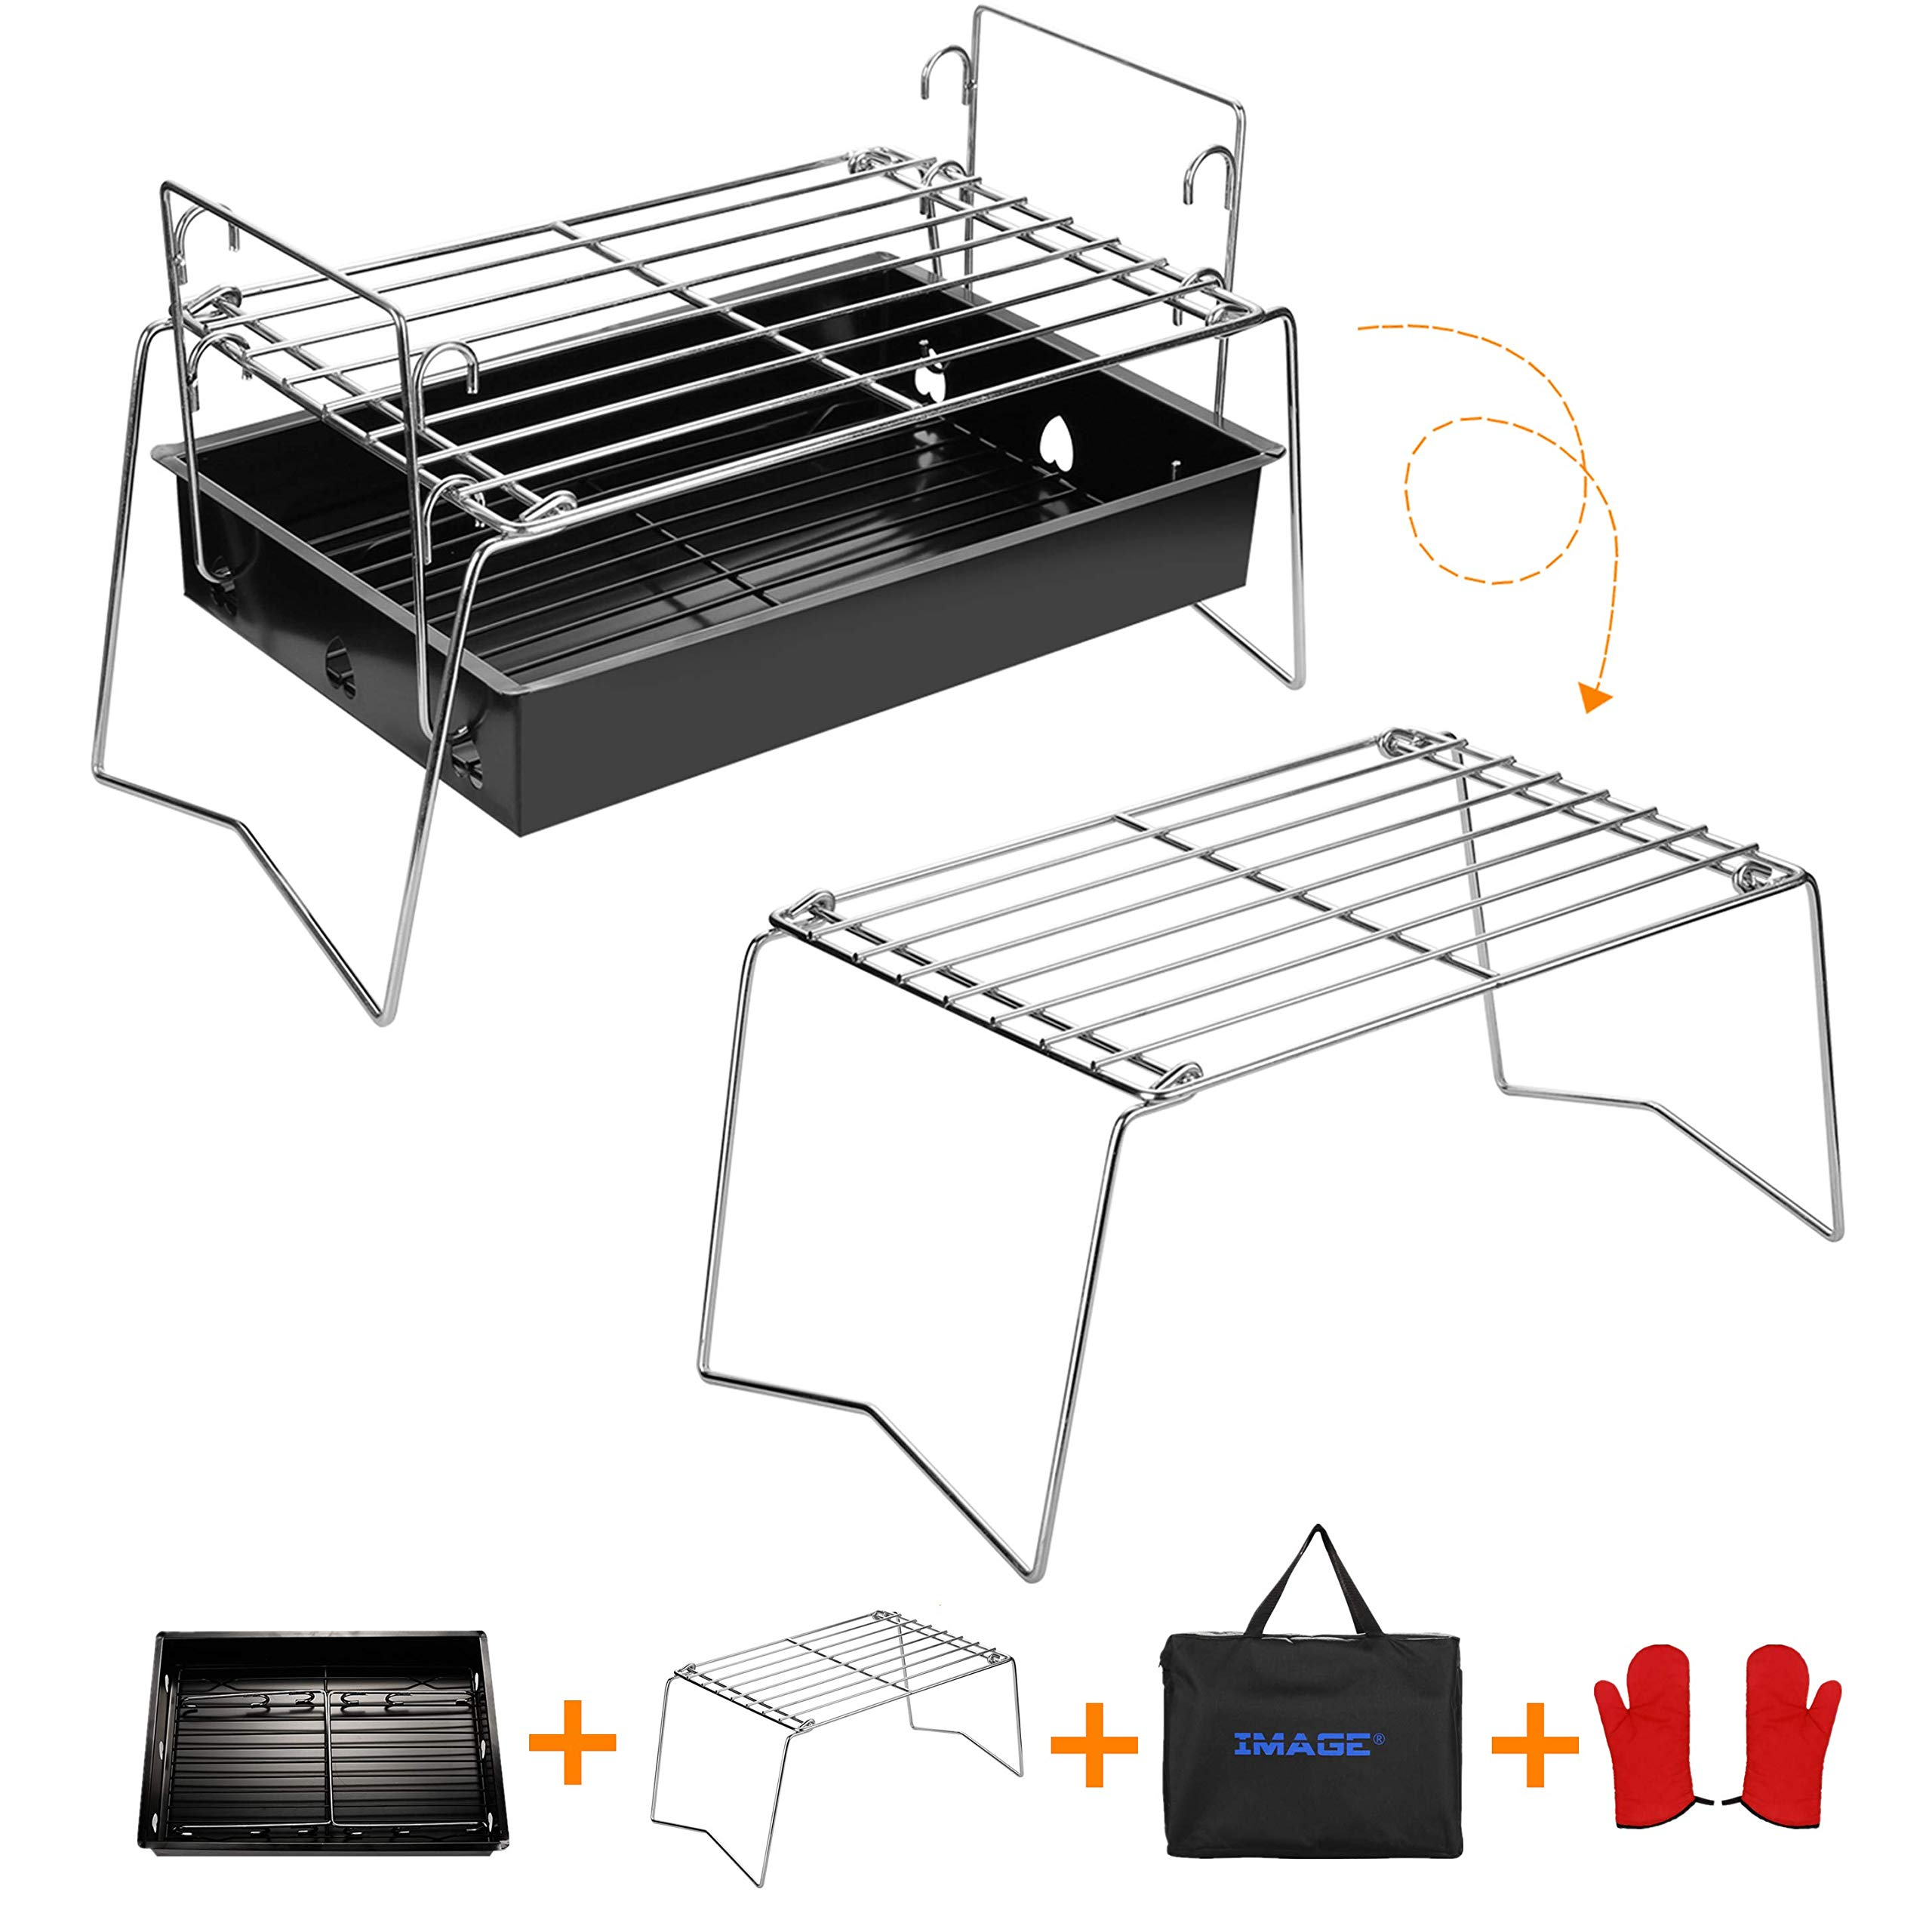 IMAGE Charcoal Grill Camp Grill Mini Grill Folding Campfire Grill Portable Grill Lightweight Steel Mesh Barbecue Grill Camping Grill for Outdoor Camping Cooking Hiking Tailgating Backpacking Party